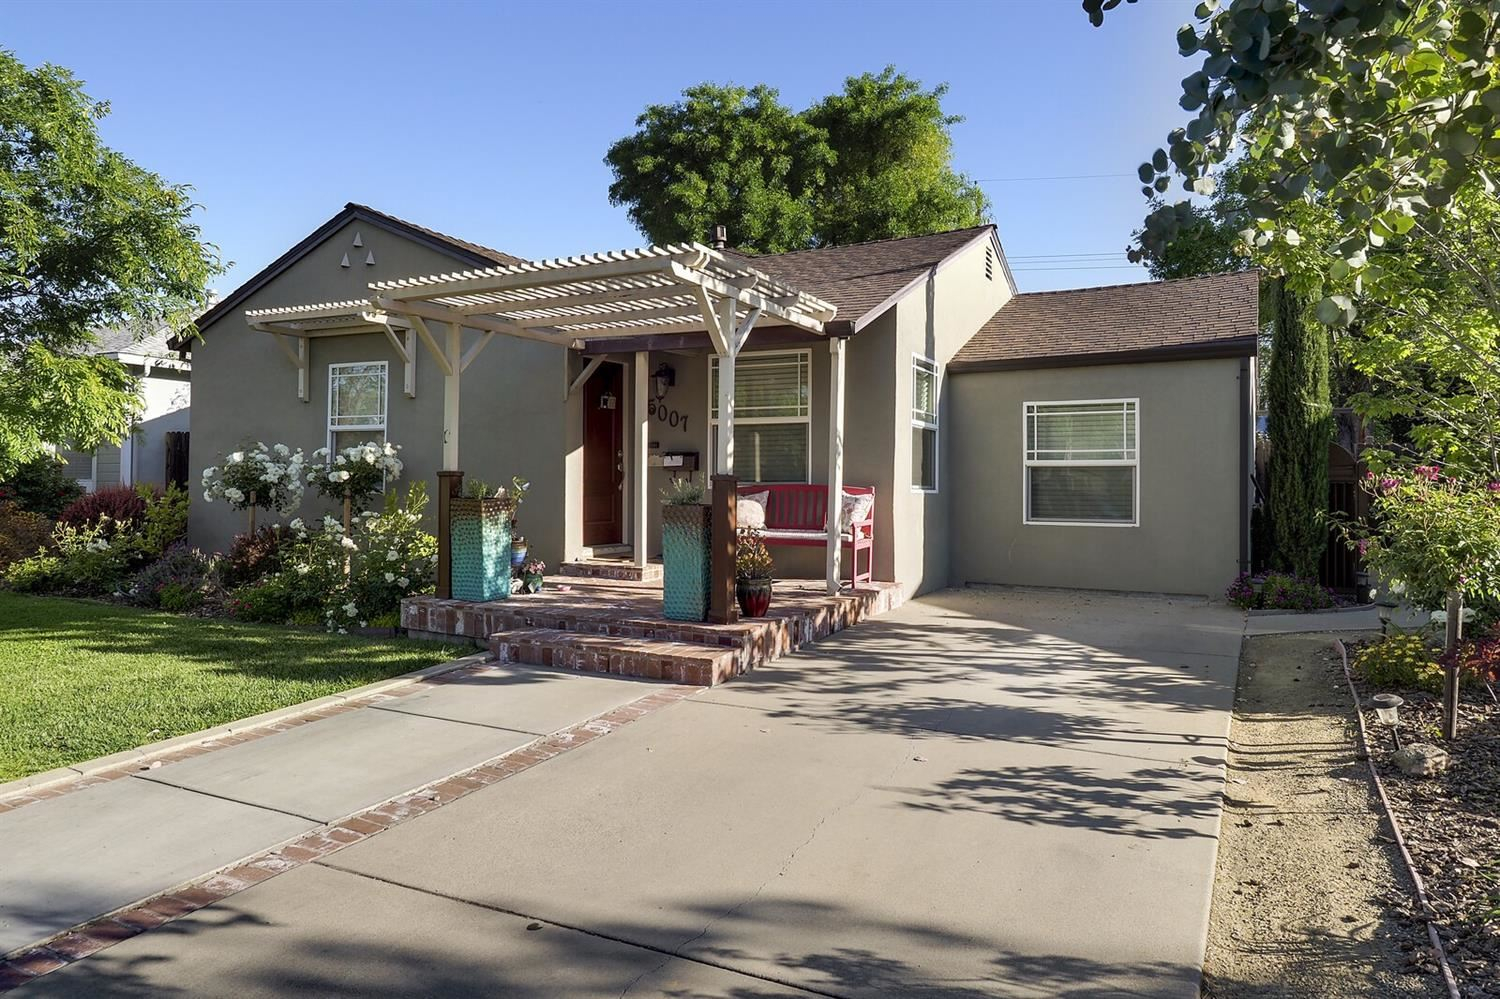 Photo of 5007 B Street, Sacramento, CA 95819 (MLS # 221037232)